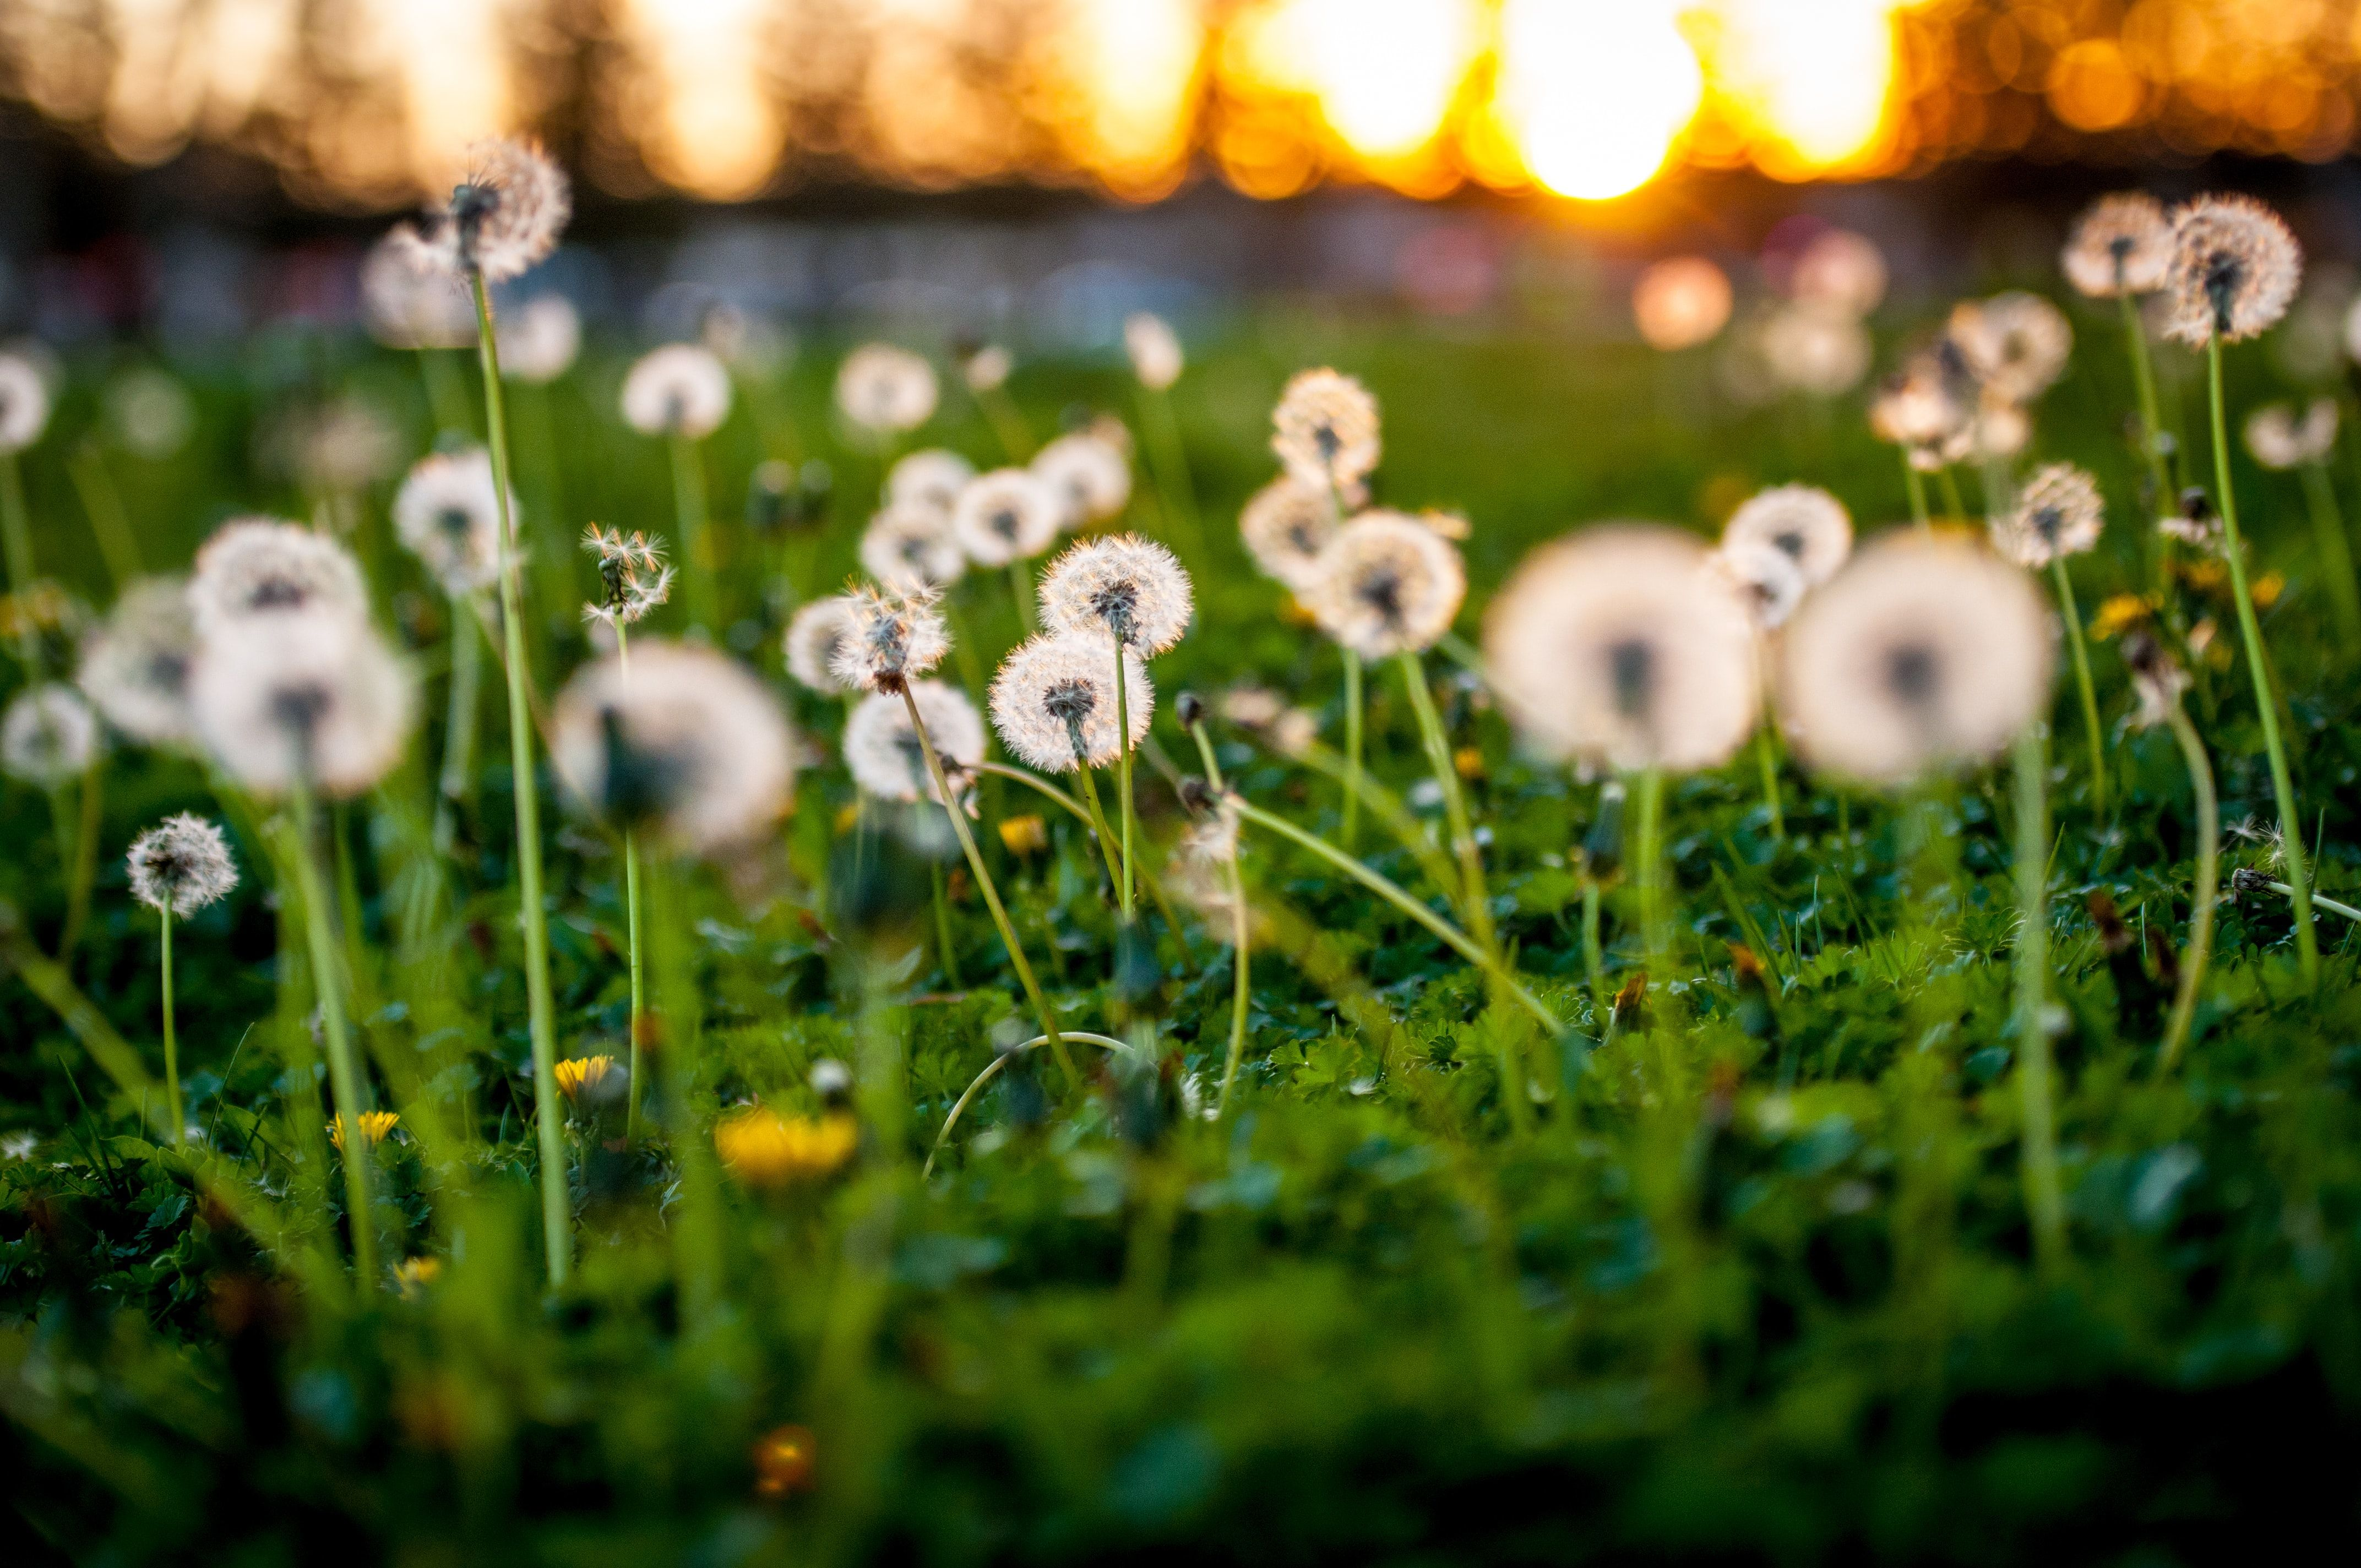 Spring Gardening: How to Get Rid of Weeds Organically